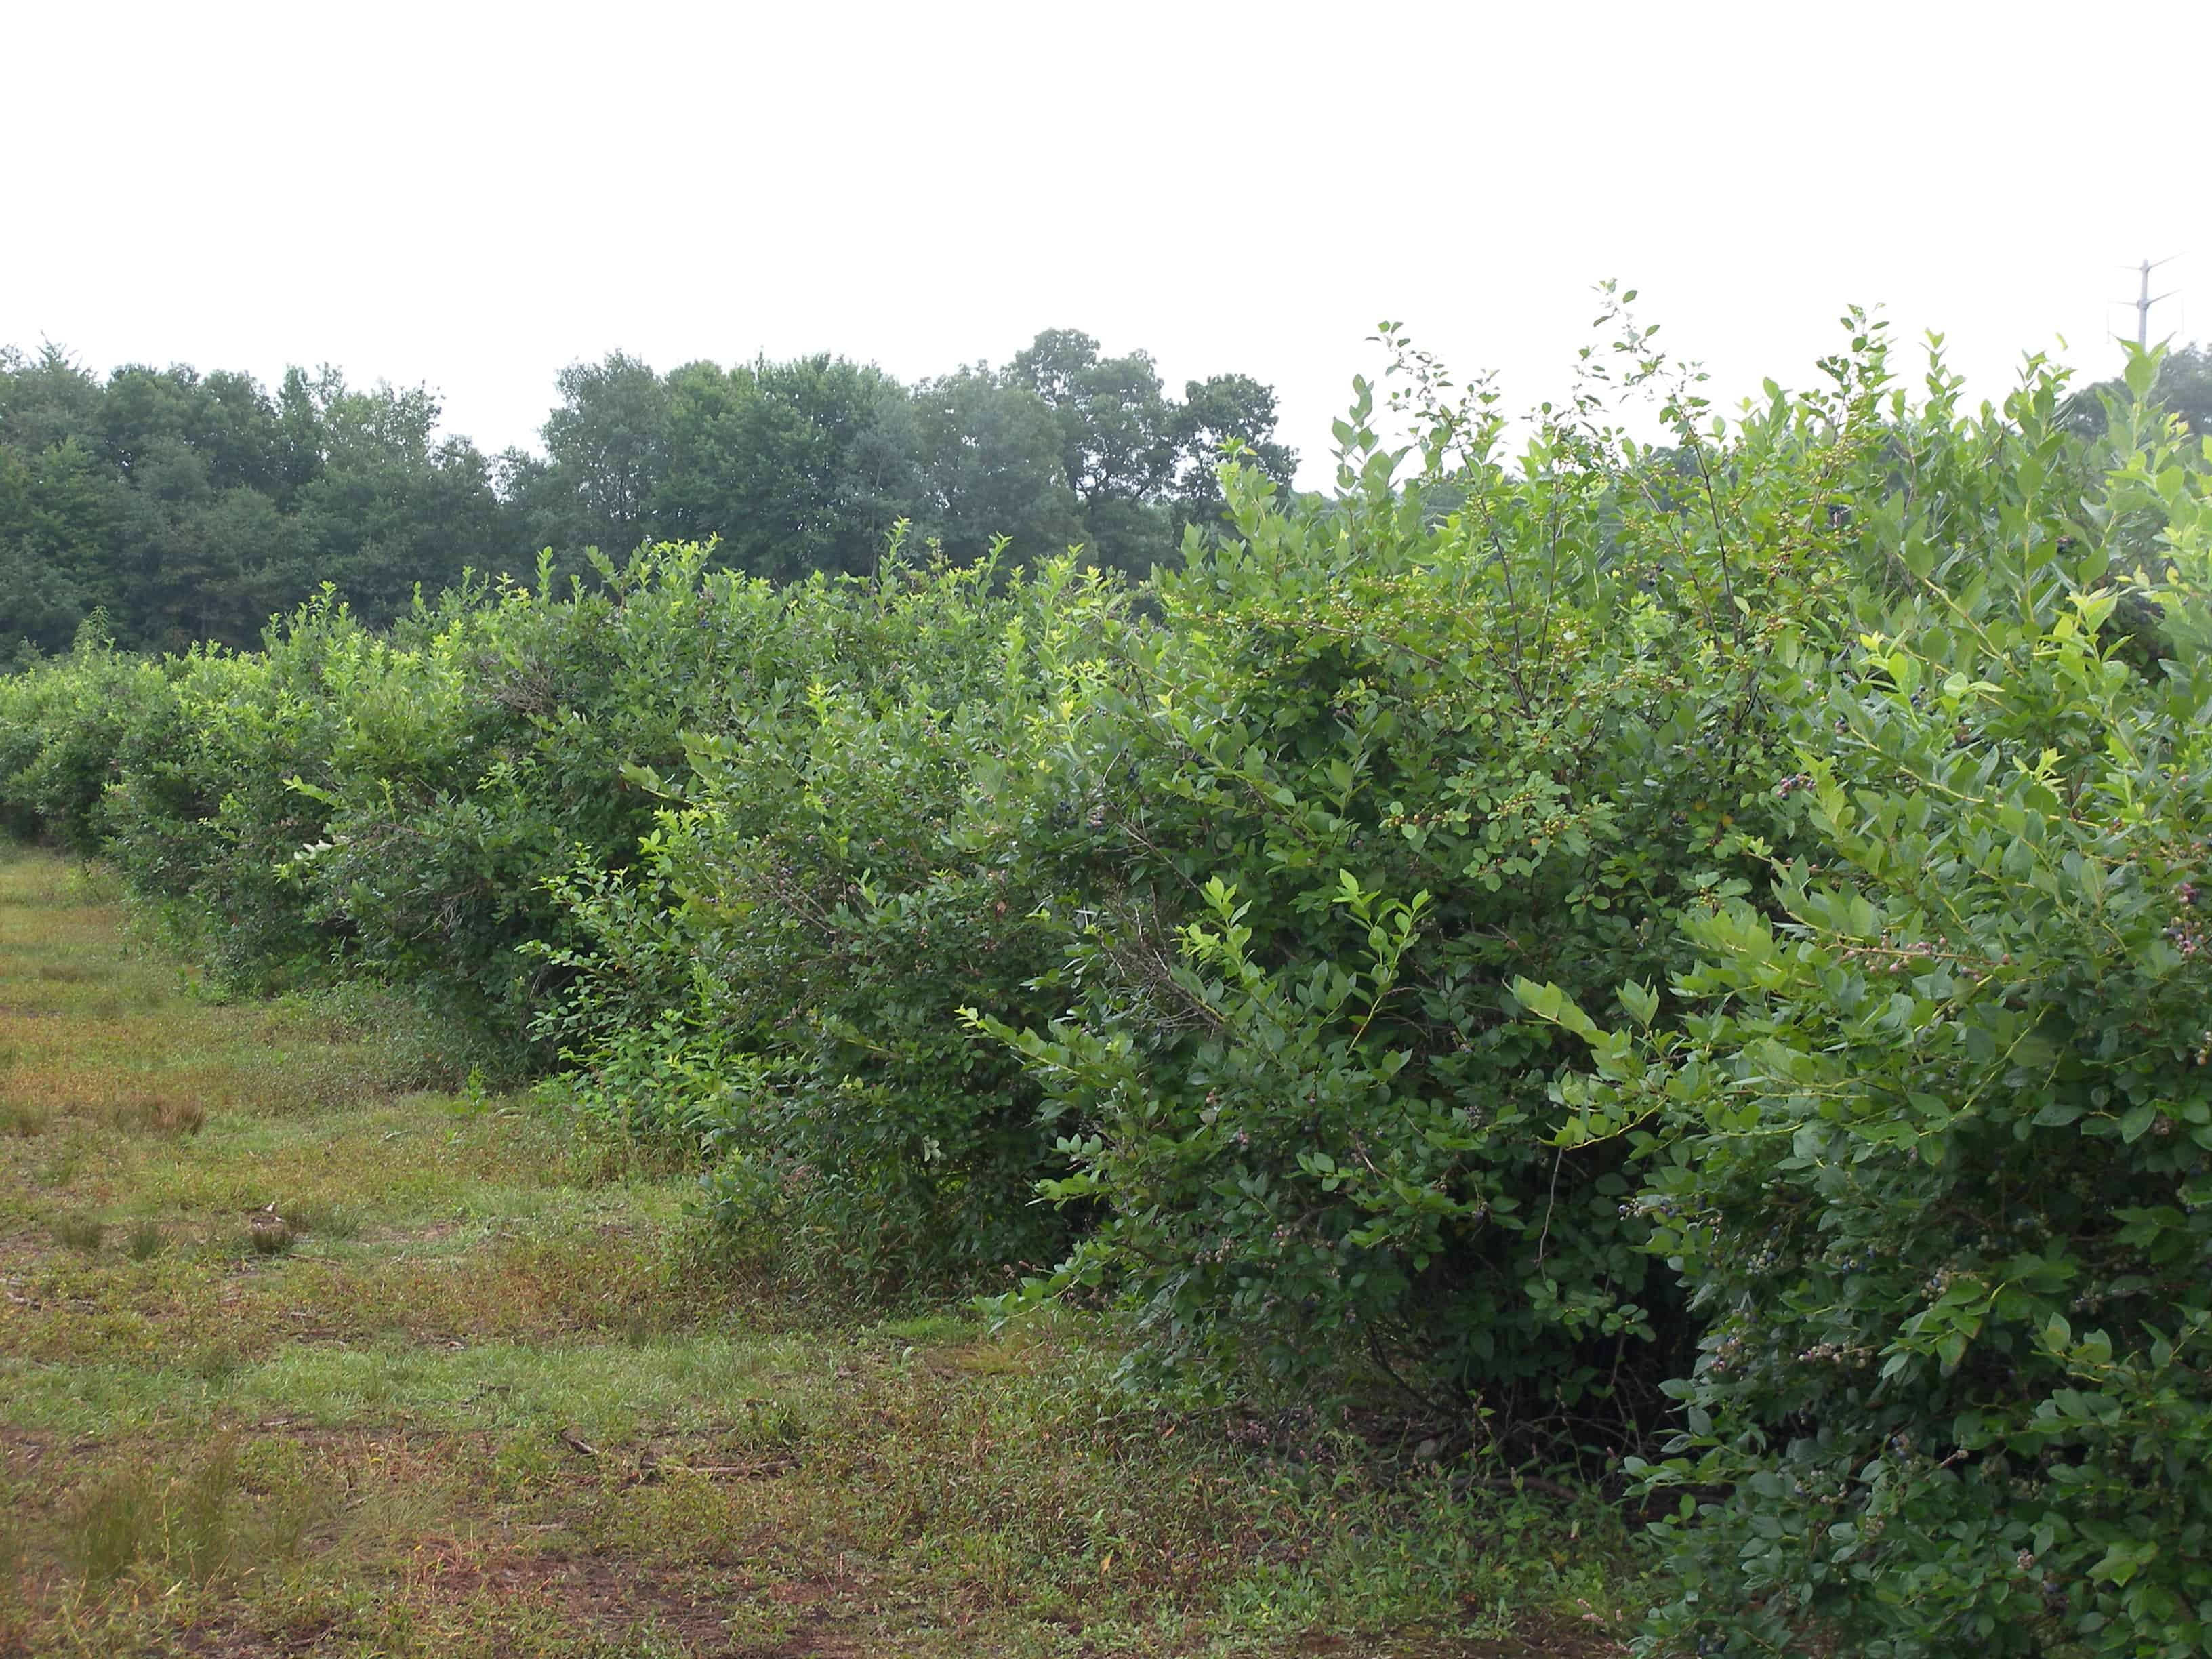 Michigan U Pick Blueberry News 7 20 2011 U Pick Begins